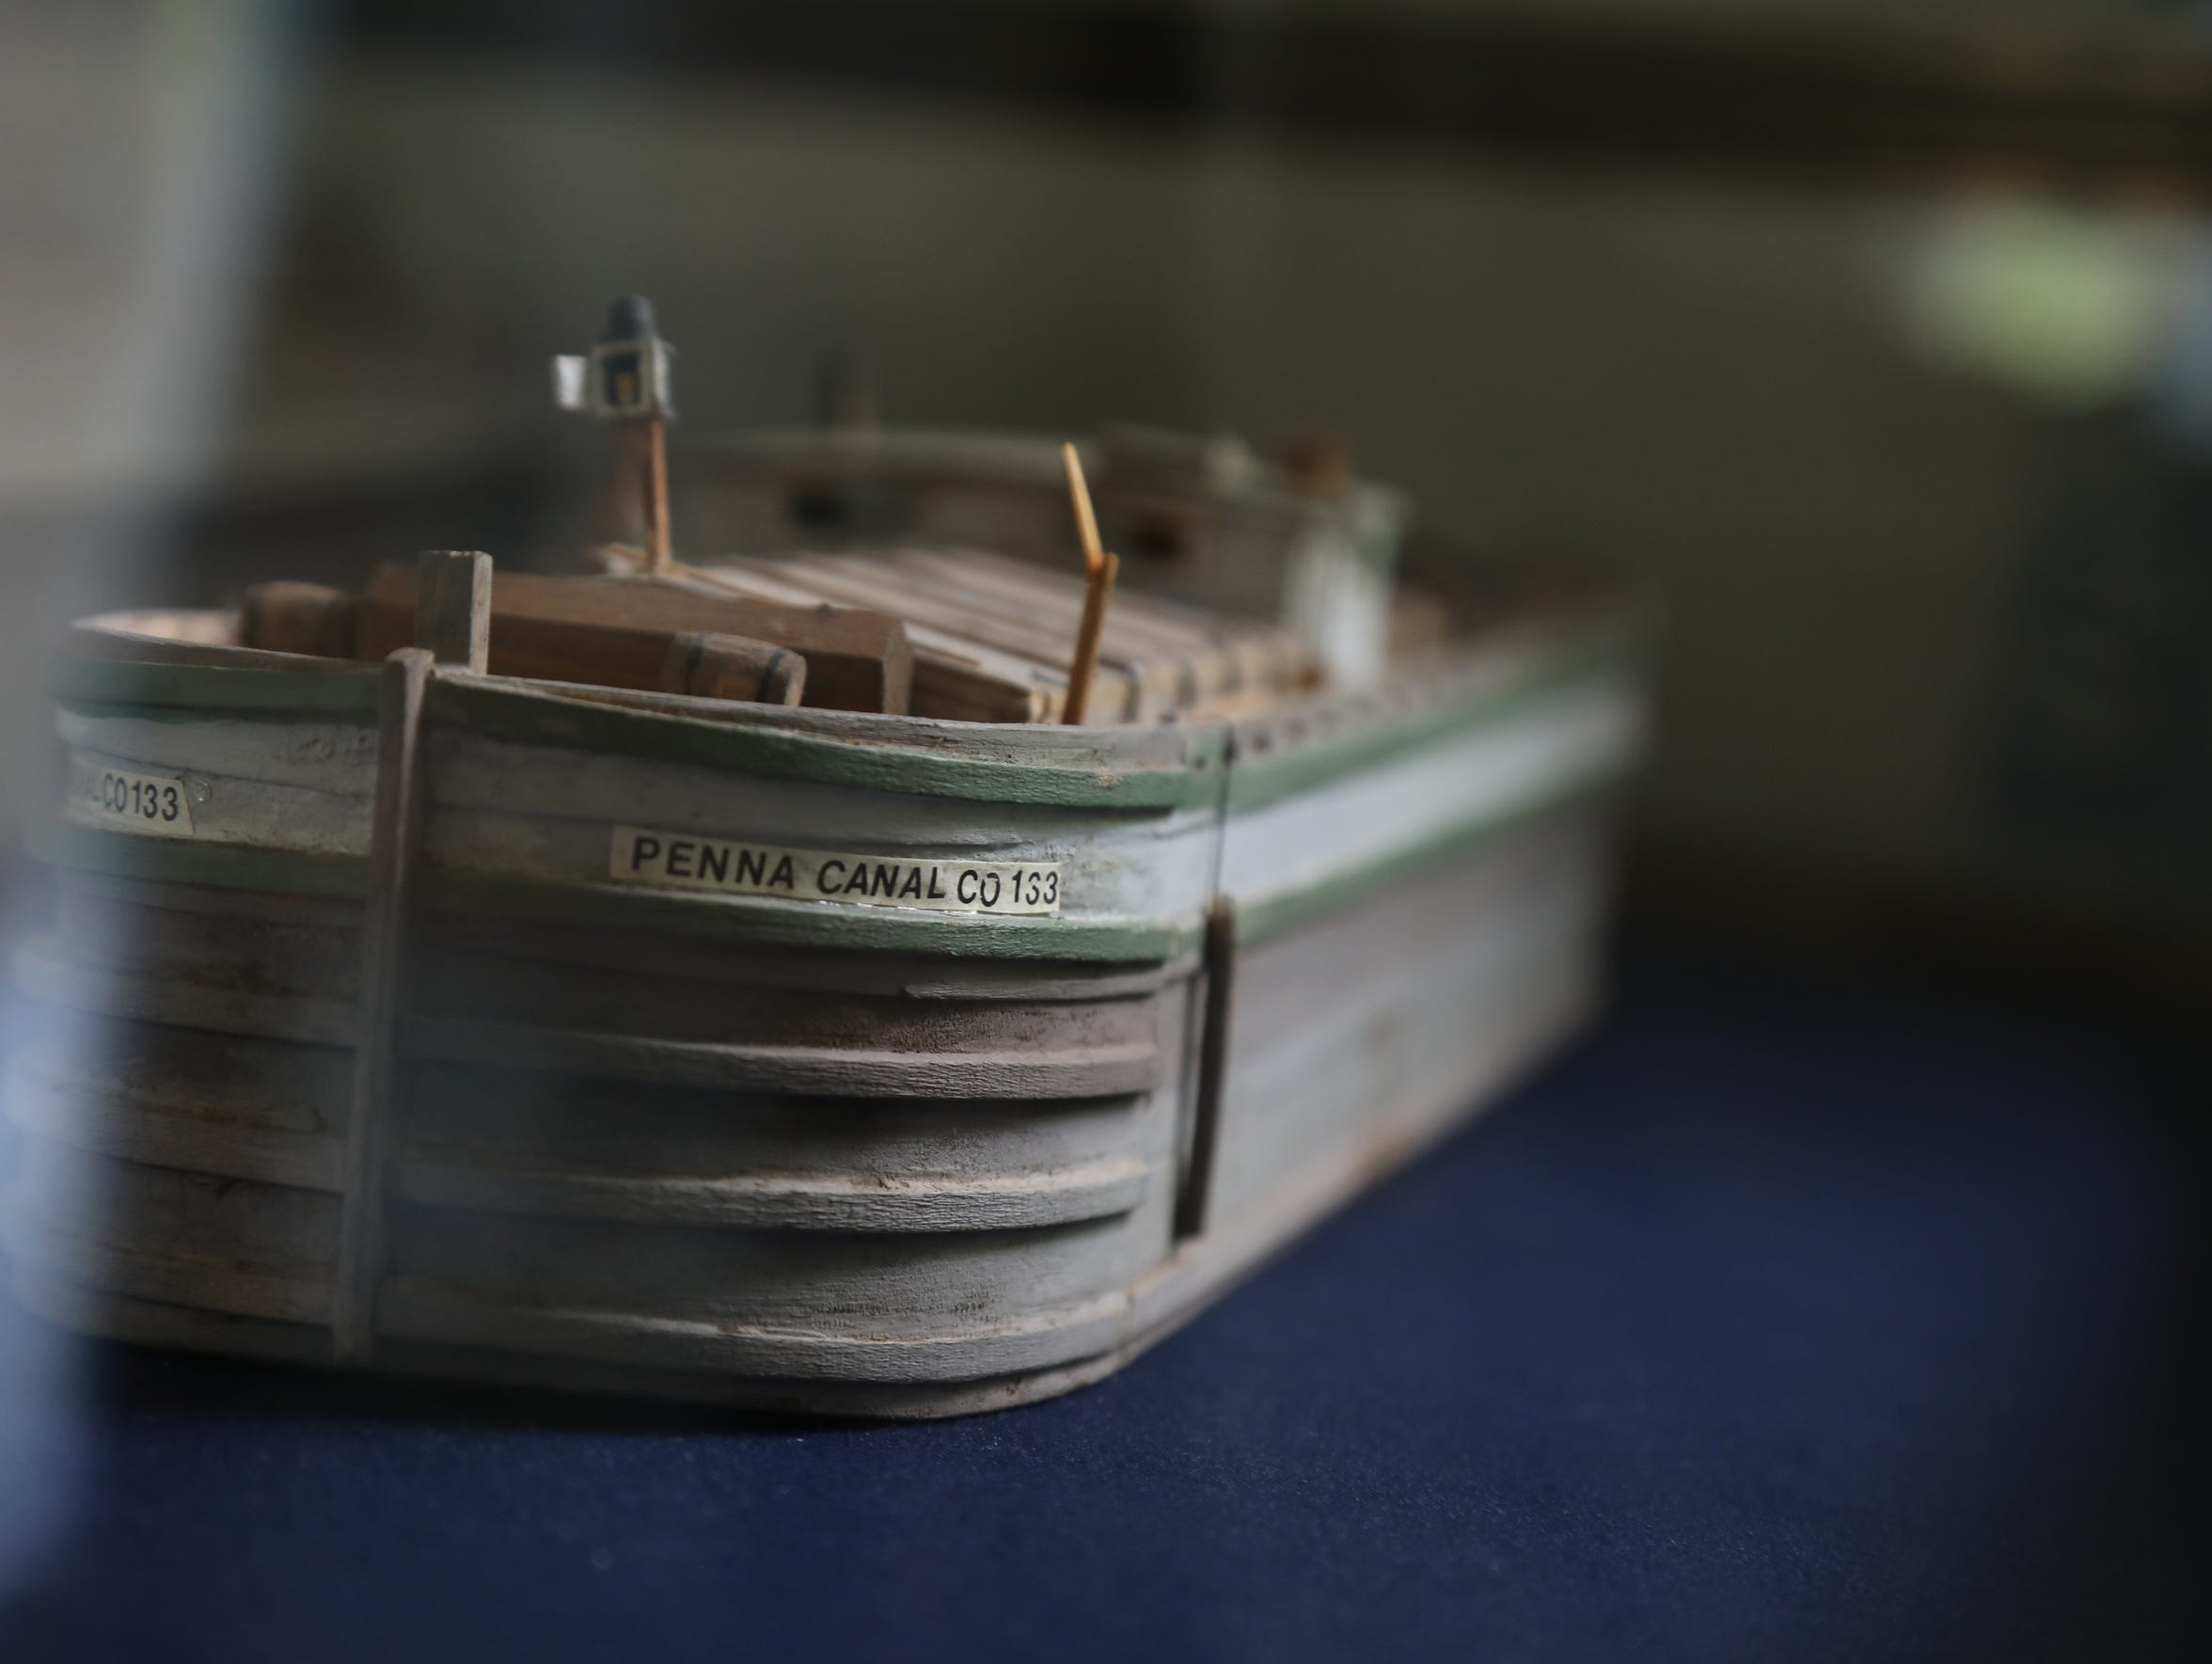 A model of one of the canal boats in the museum of